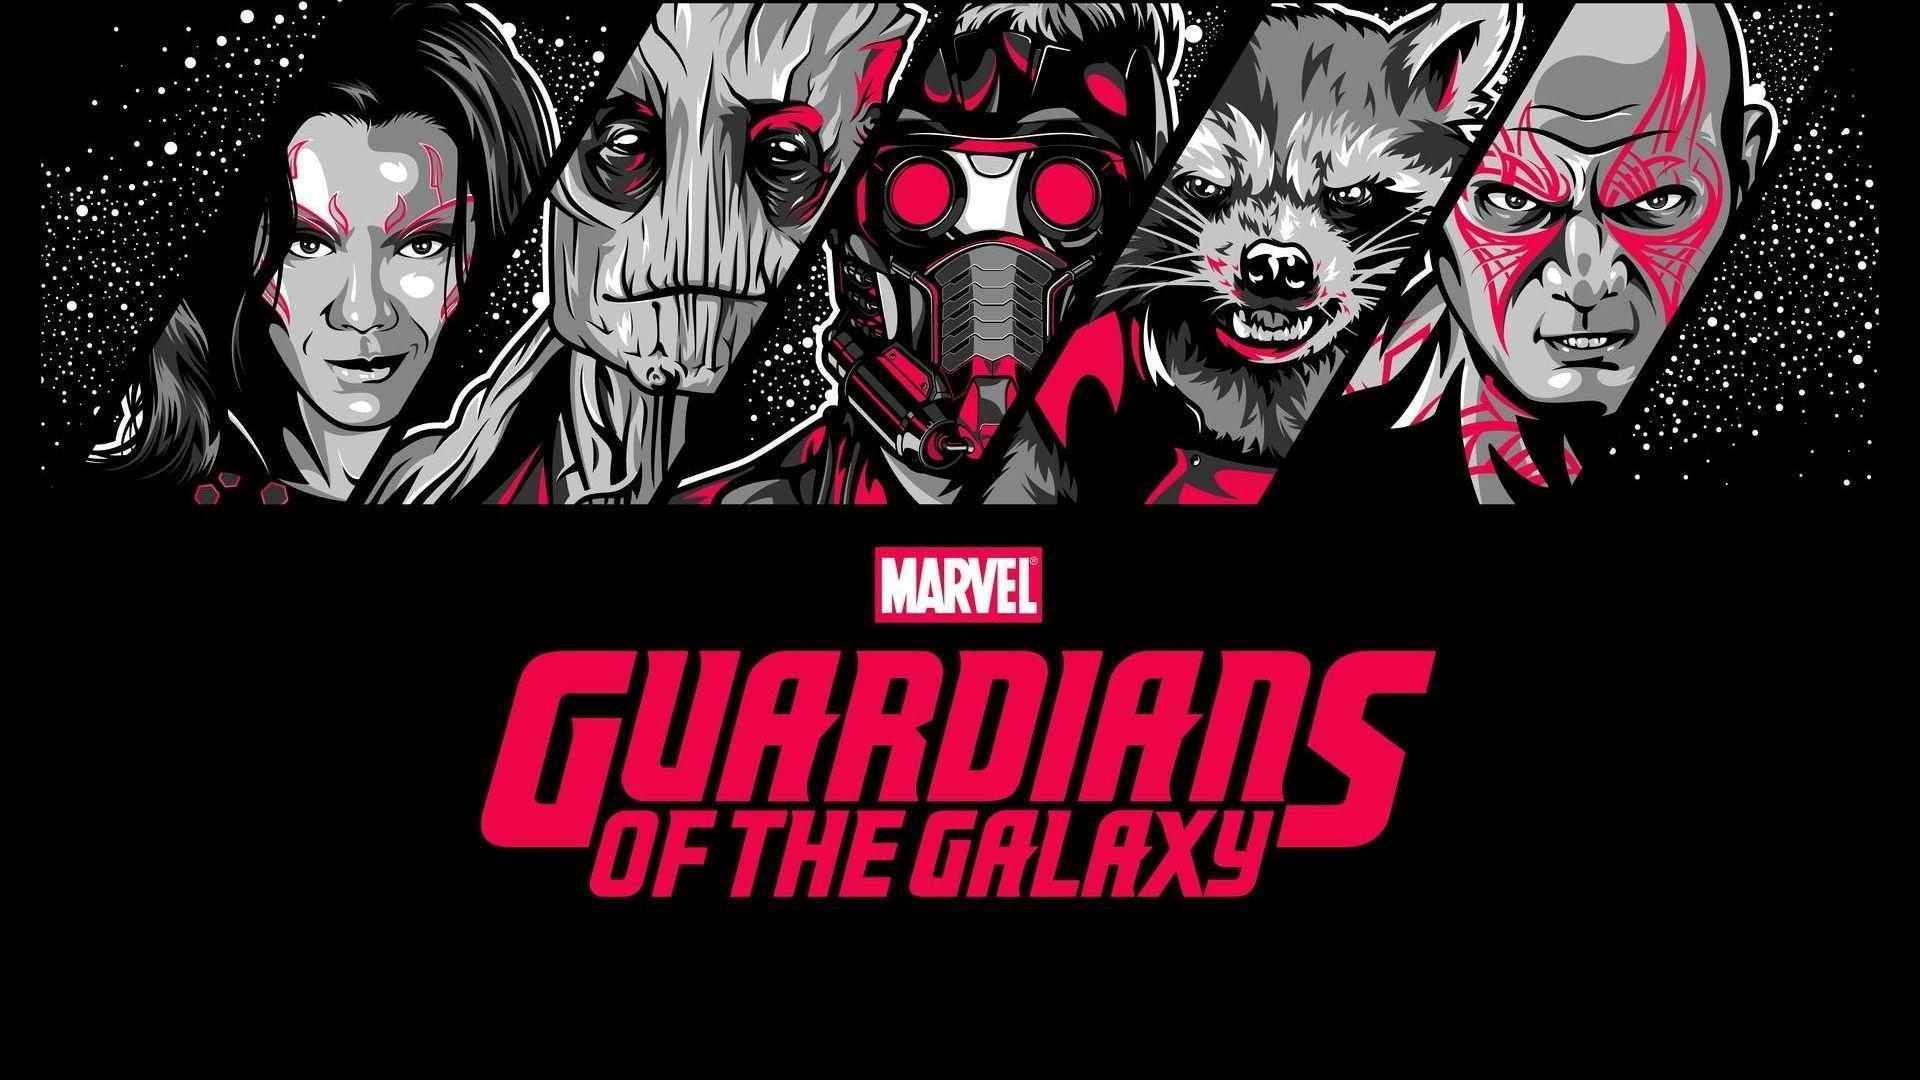 Guardians Of The Galaxy Wallpapers Wallpaper Cave